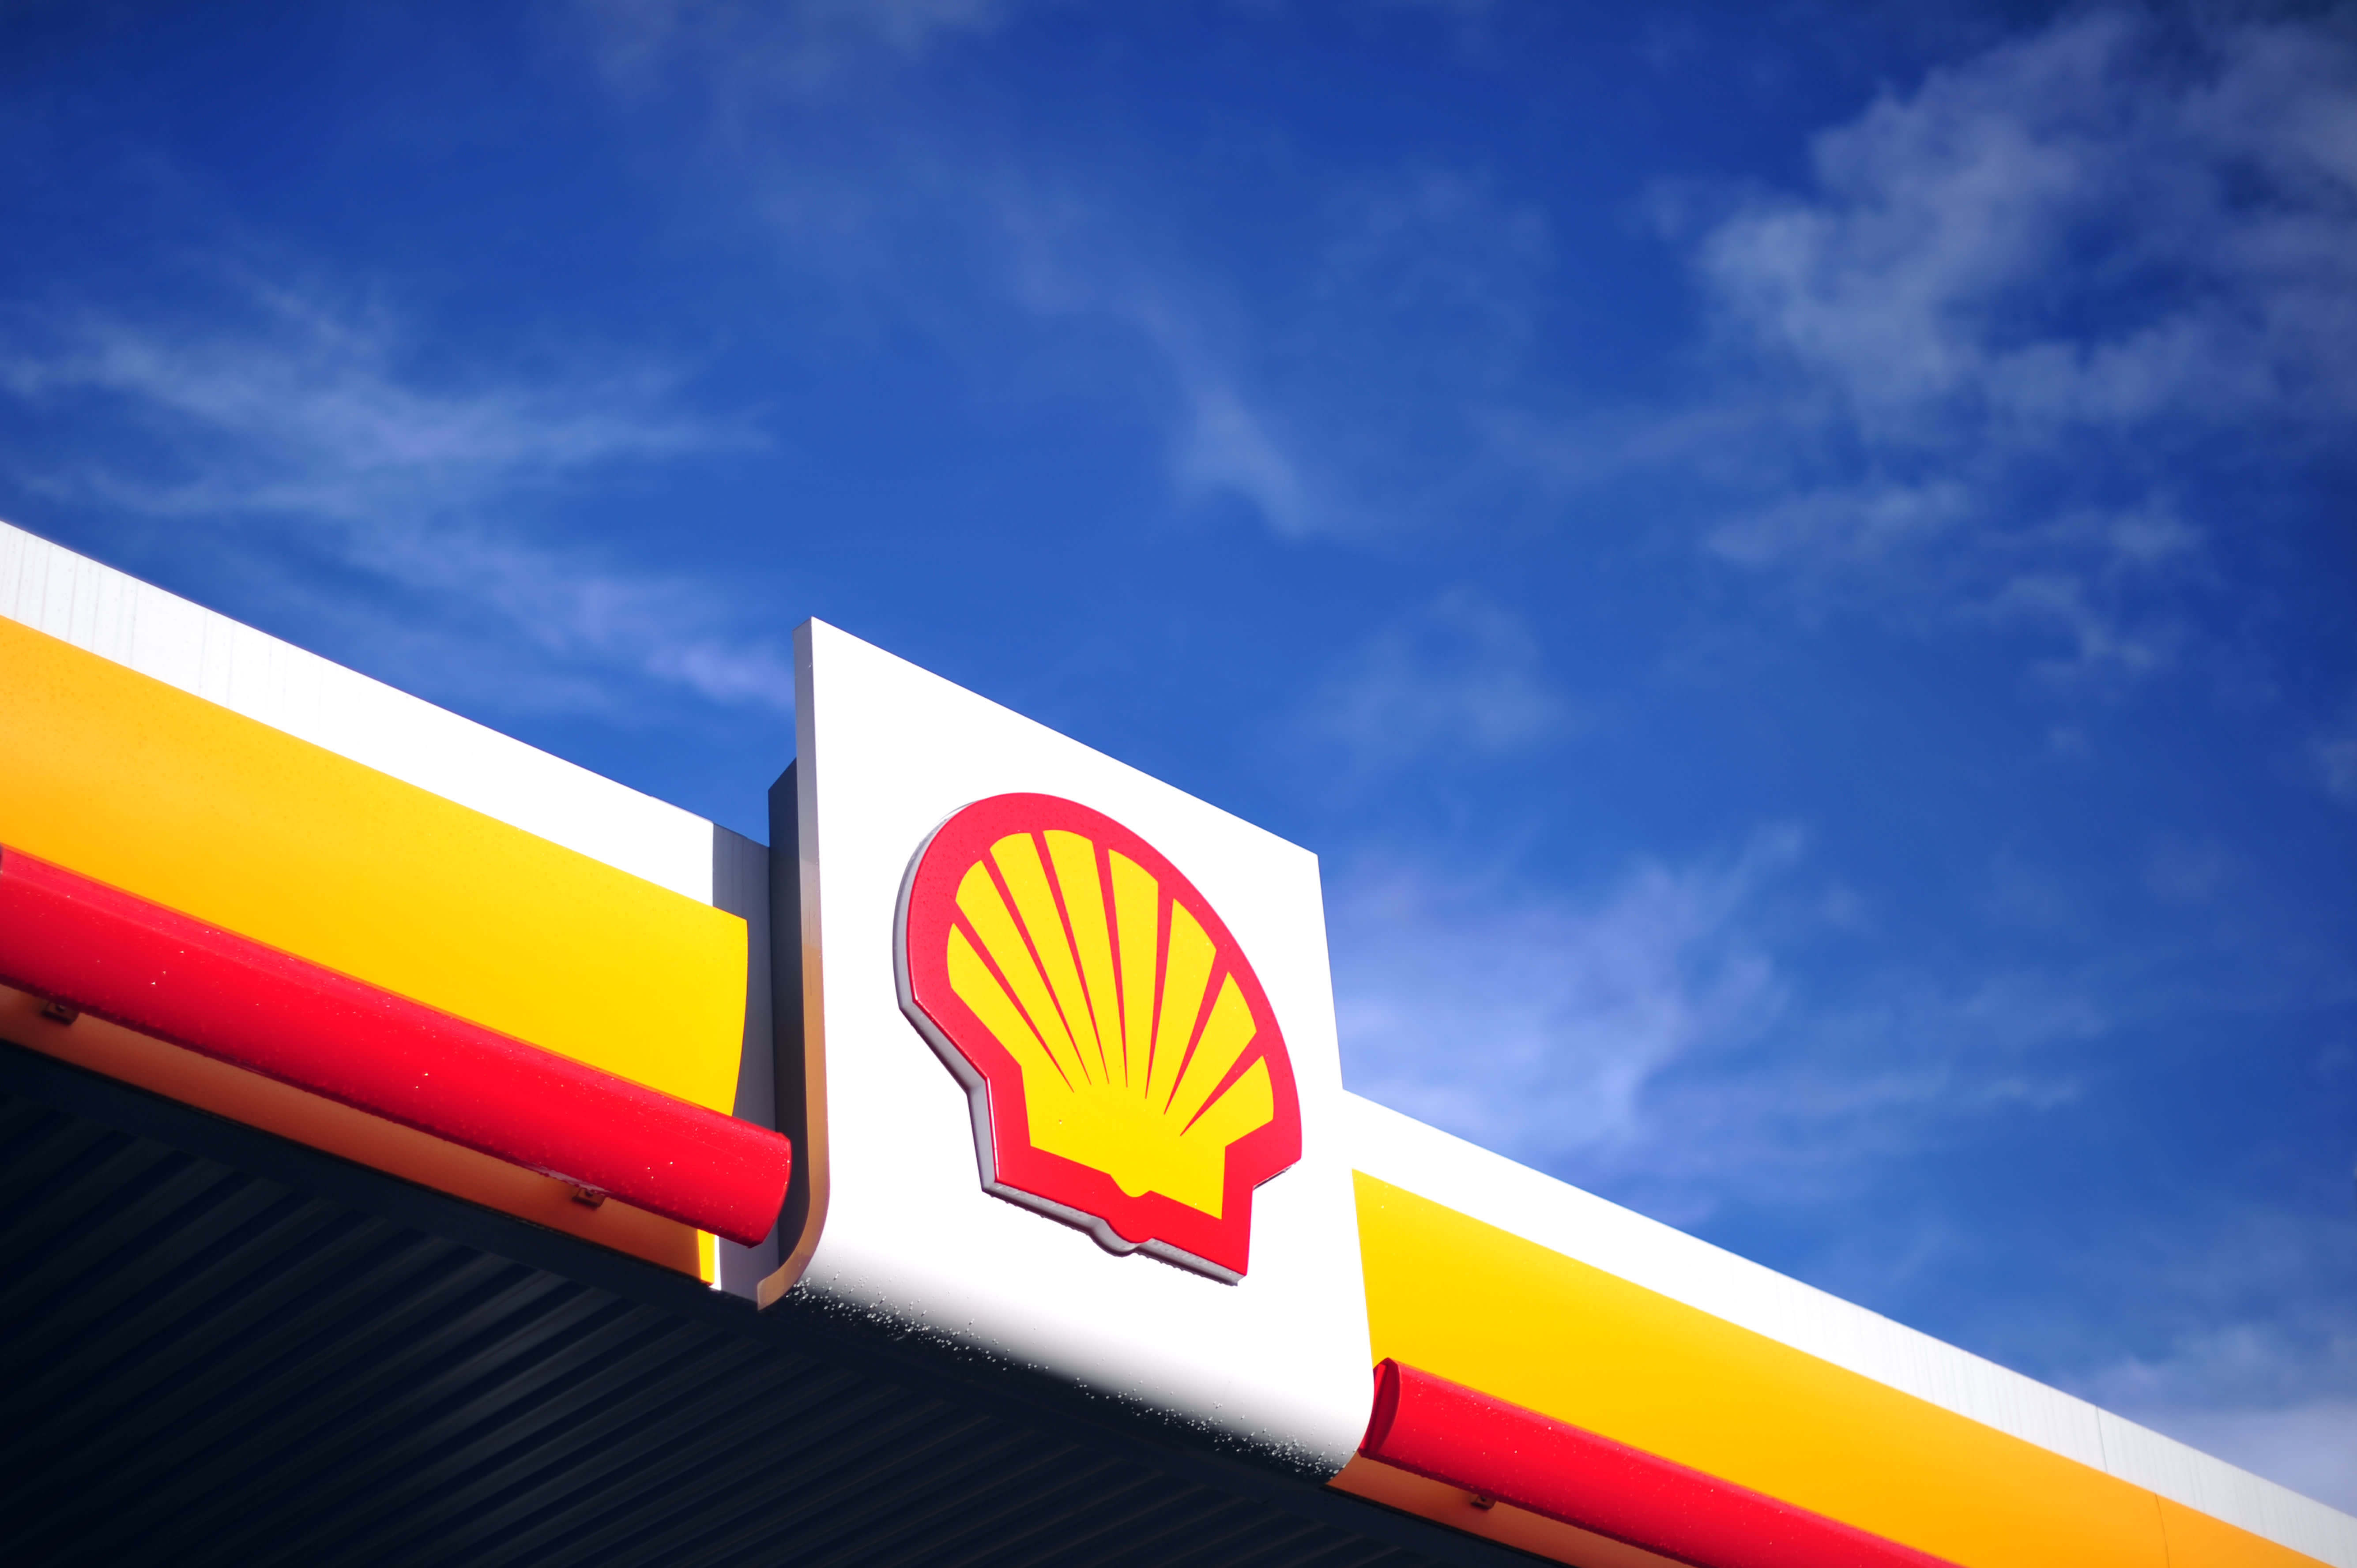 Shell's second-quarter profit slumps 82% on coronavirus hit to oil prices energy demand – CNBC